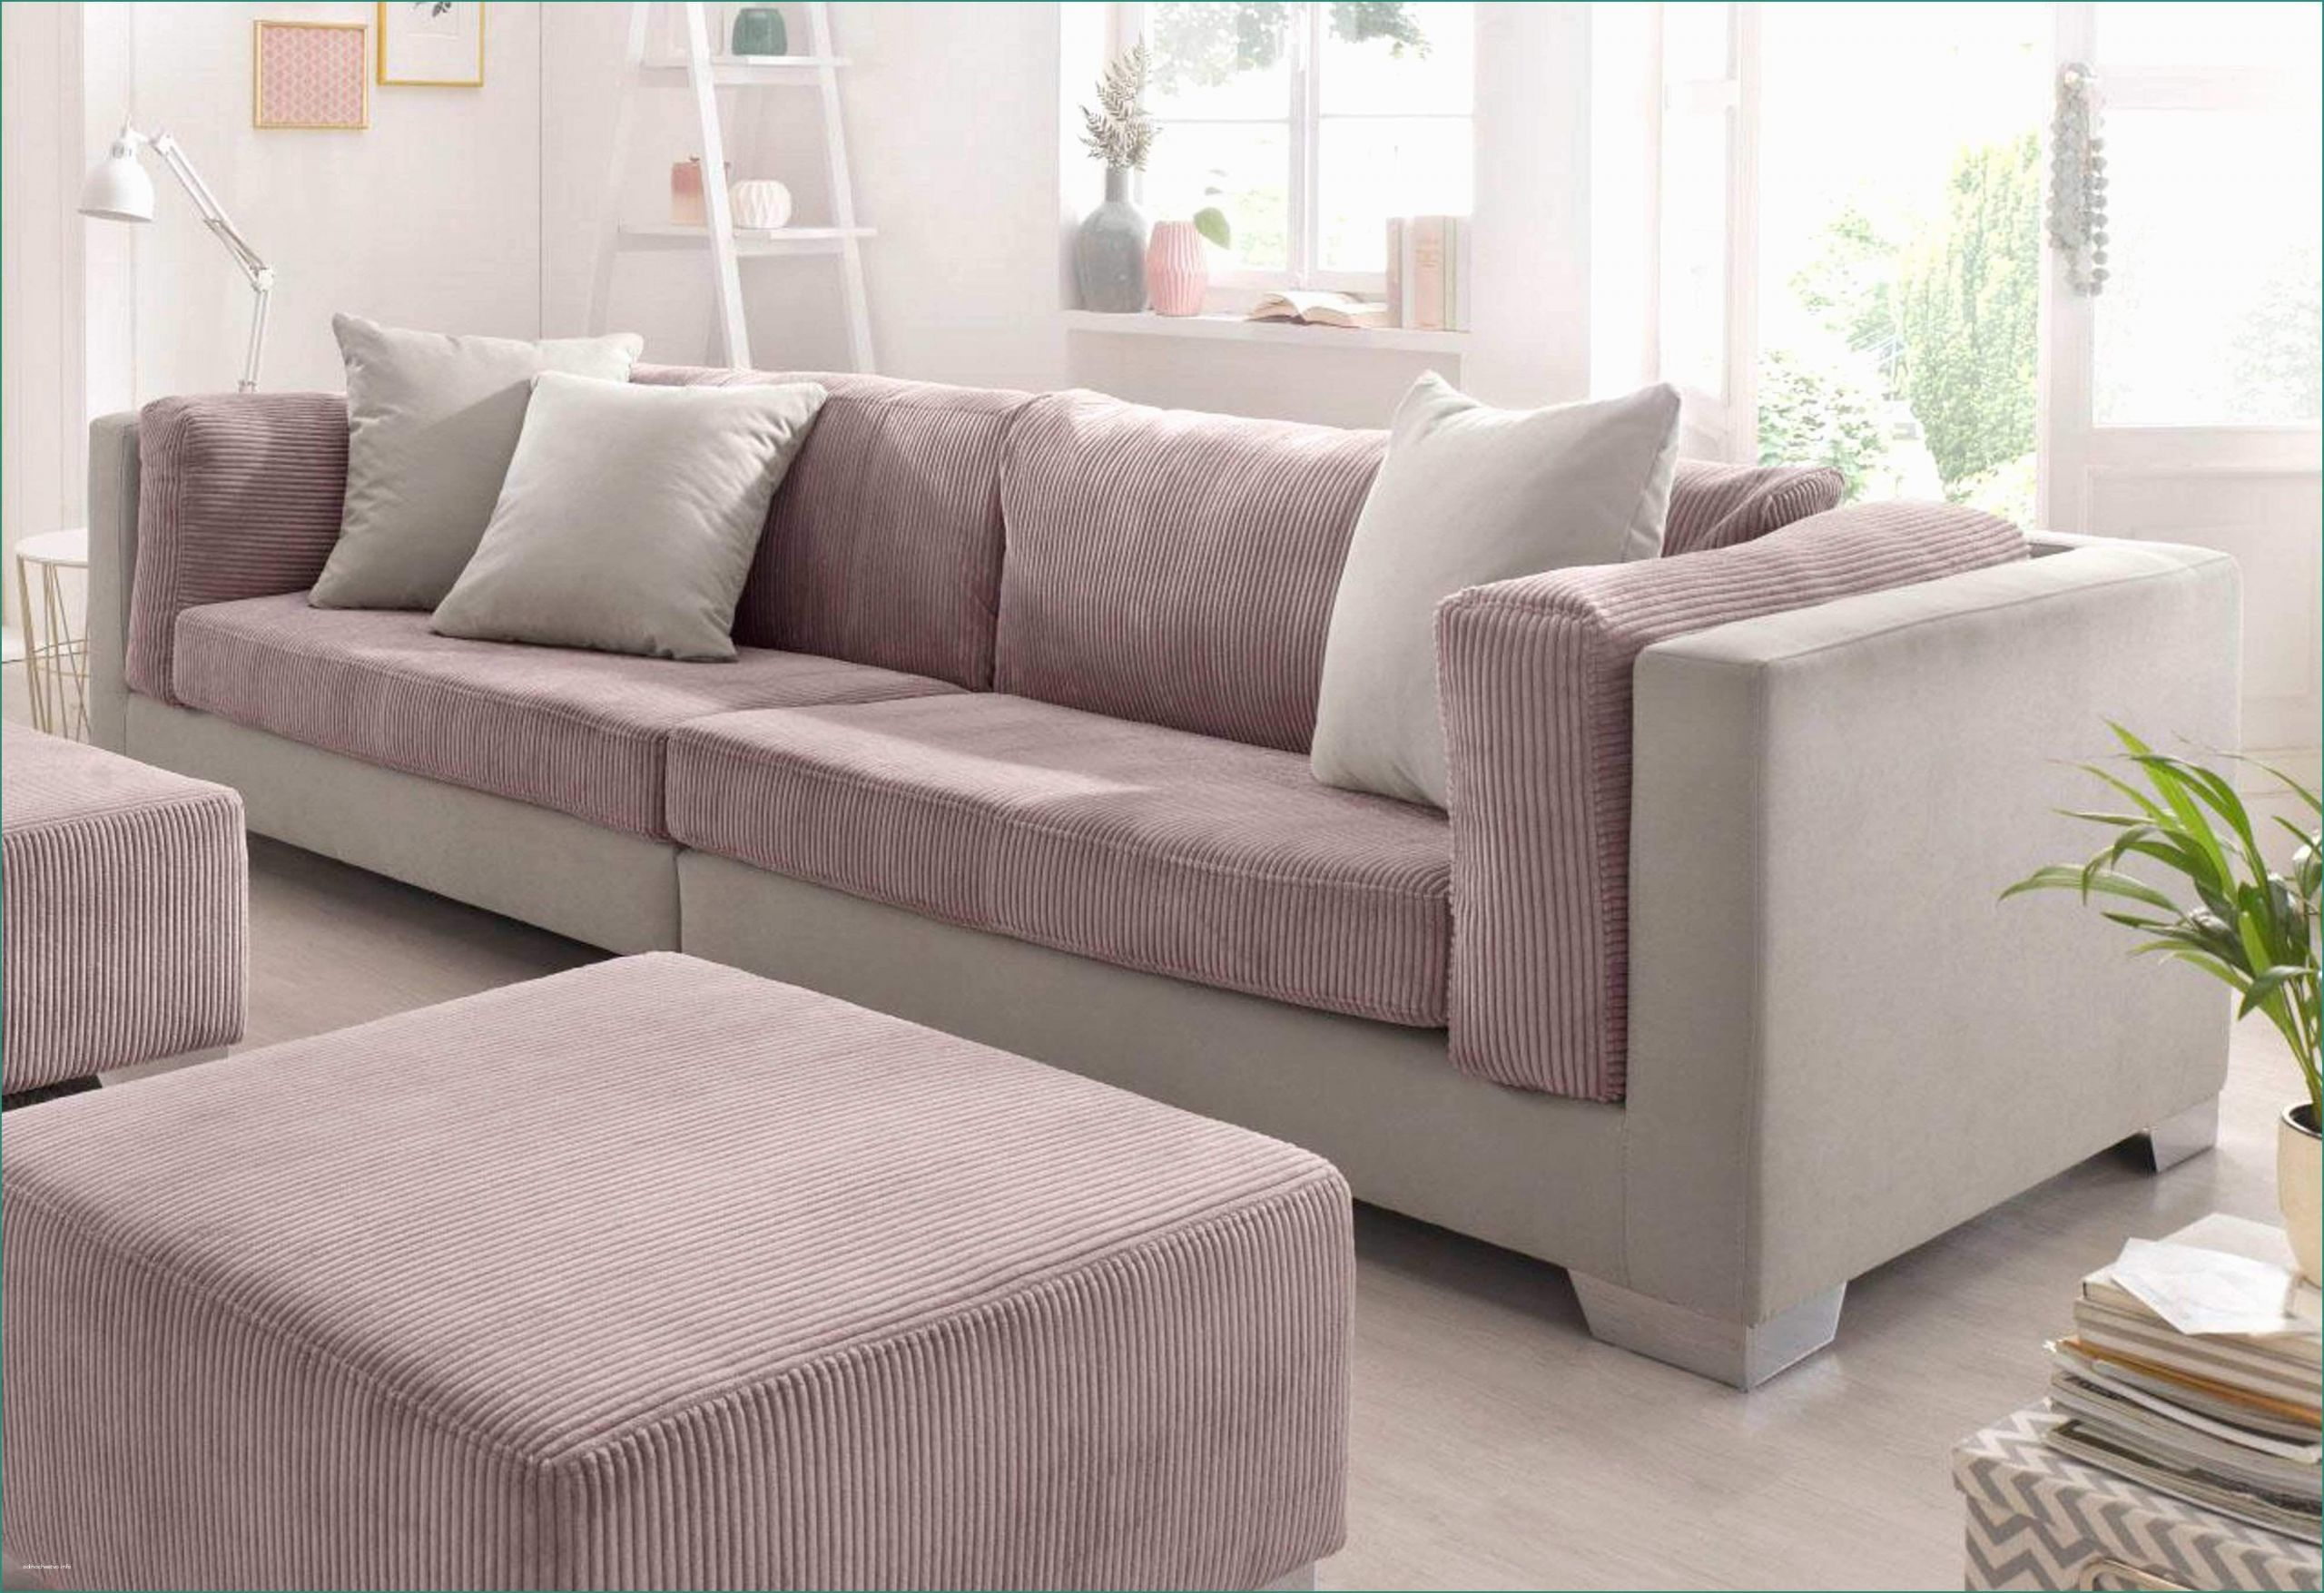 large living room furniture luxury kuhles lounge wohnzimmer und riesen sofa beautiful big of large living room furniture